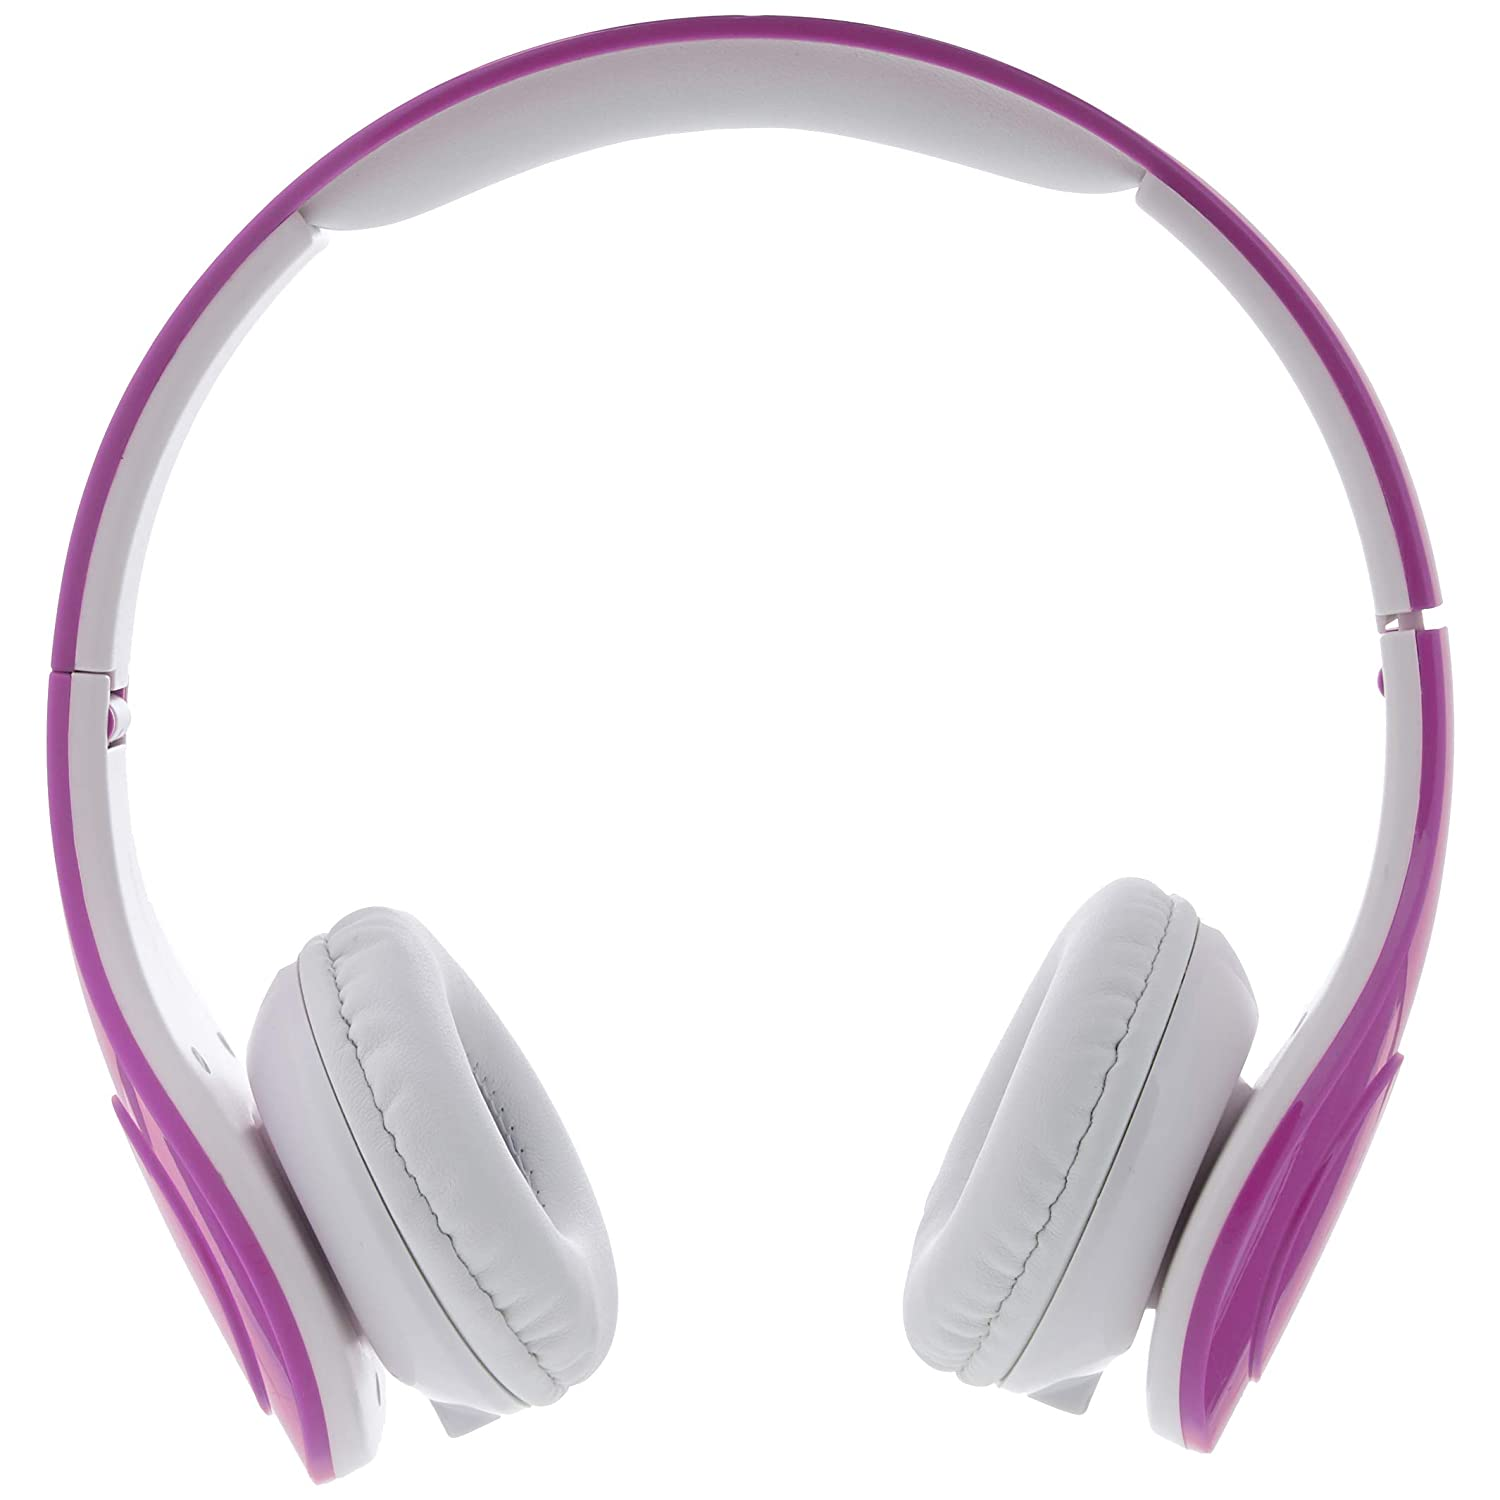 Purple Basics Volume Limited Wired Over-Ear Headphones for Kids with Two Ports for Sharing